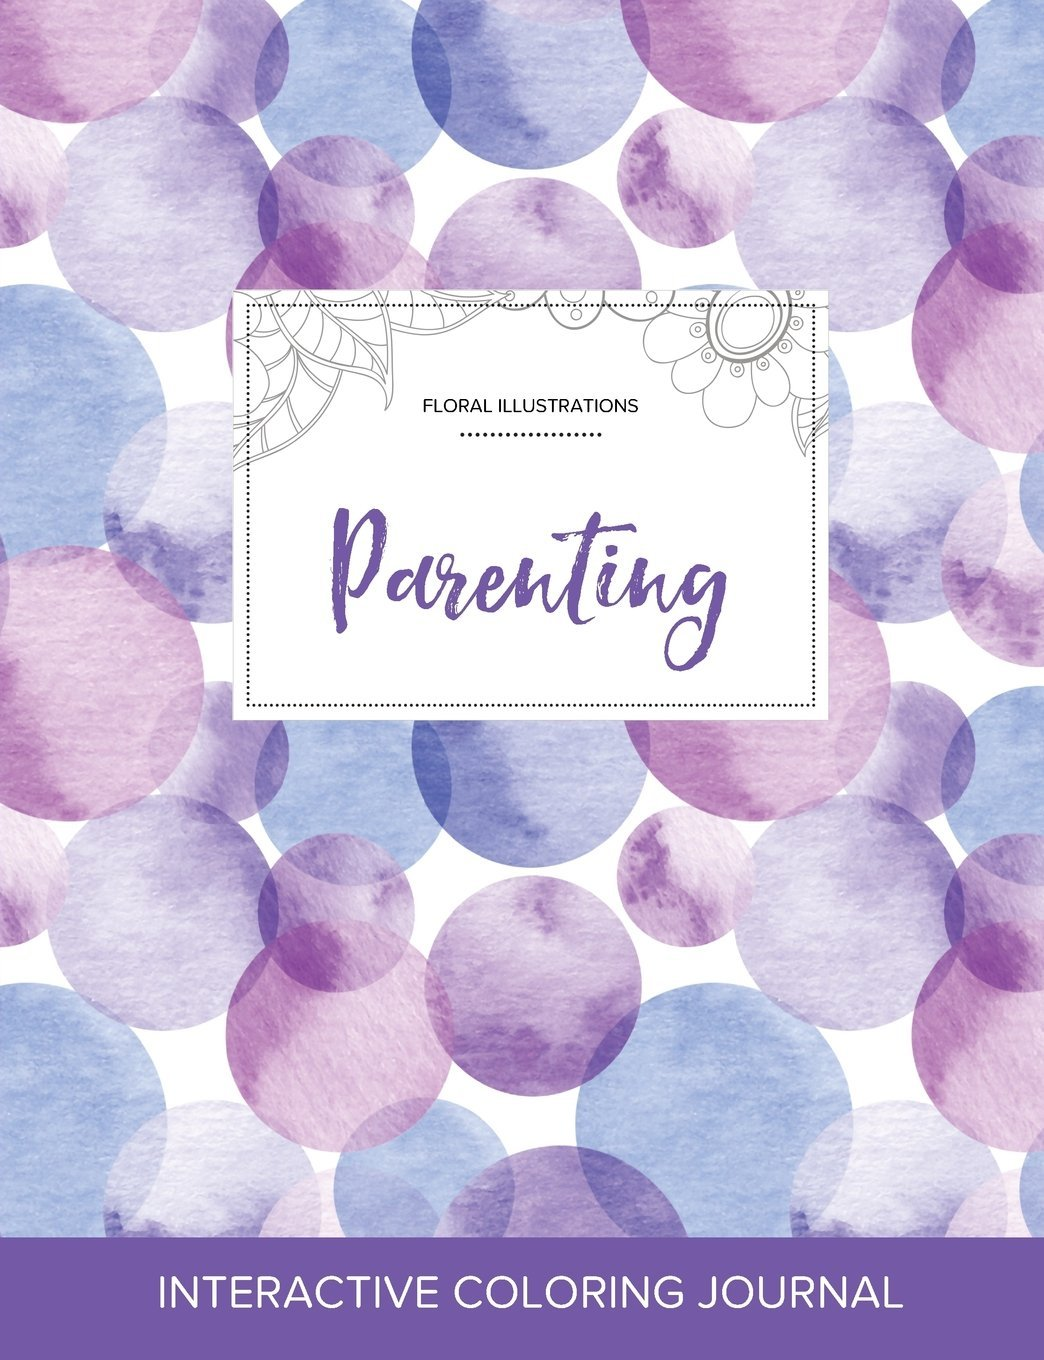 Adult Coloring Journal: Parenting (Floral Illustrations, Purple Bubbles) PDF